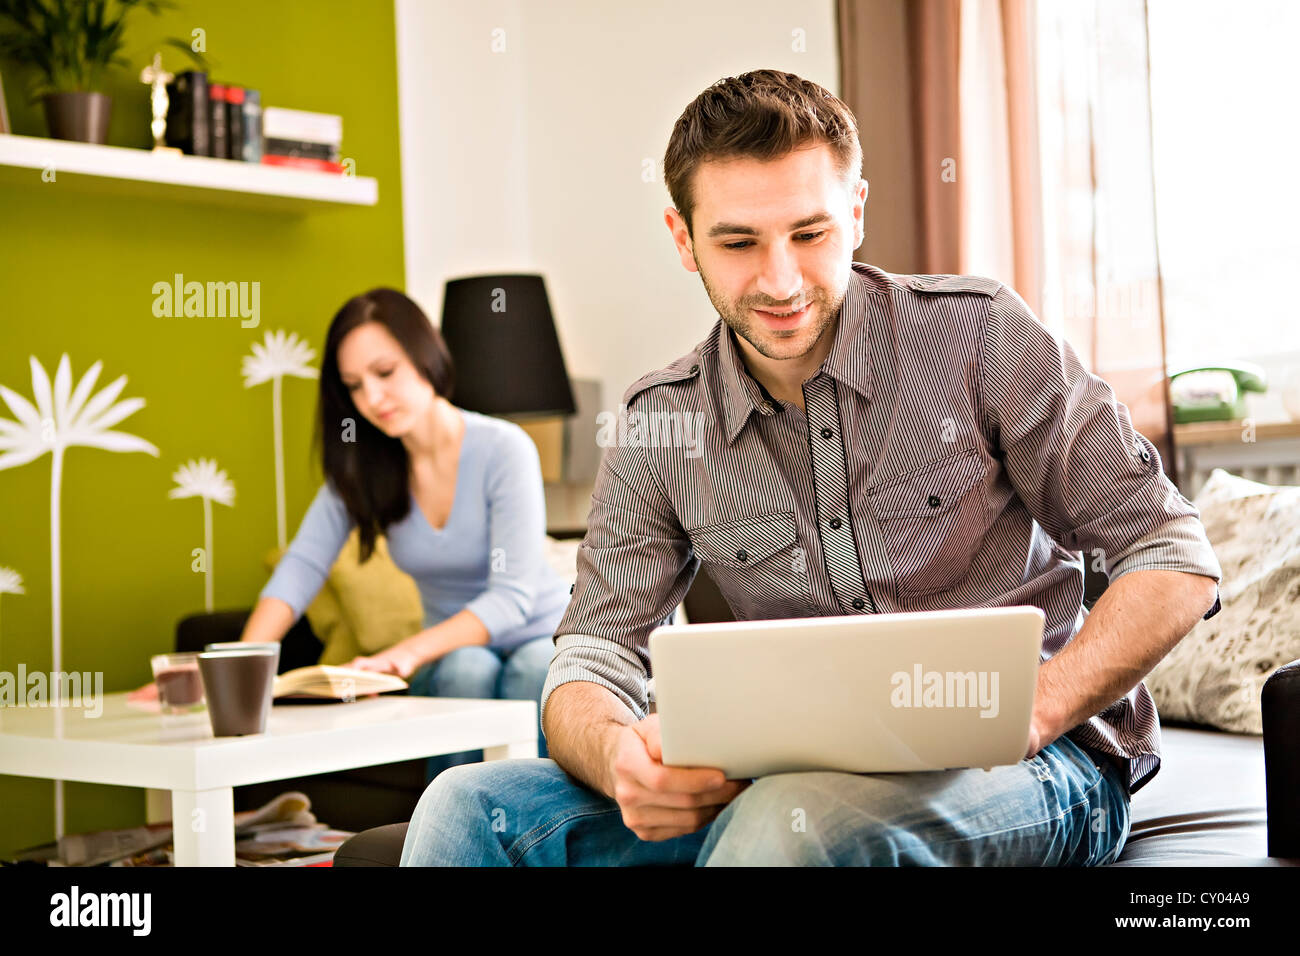 Young man at home, with a laptop, young woman at back - Stock Image